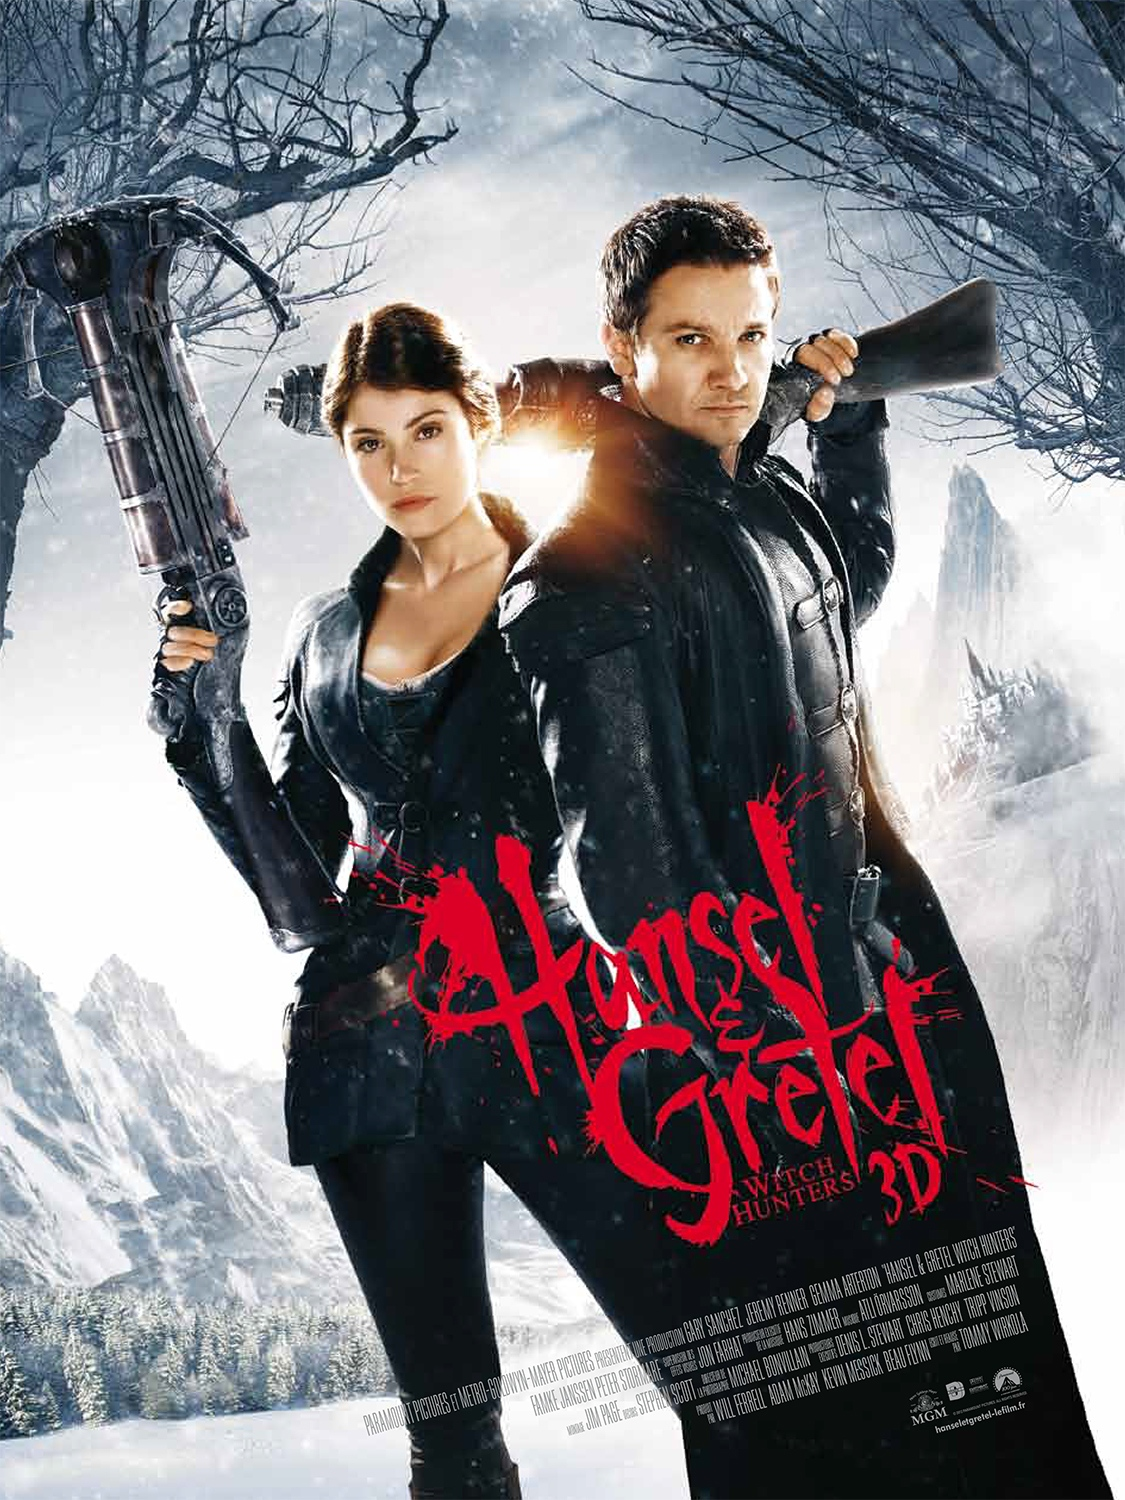 Tournoi de popularité film - Page 3 Hansel-and-gretel-poster